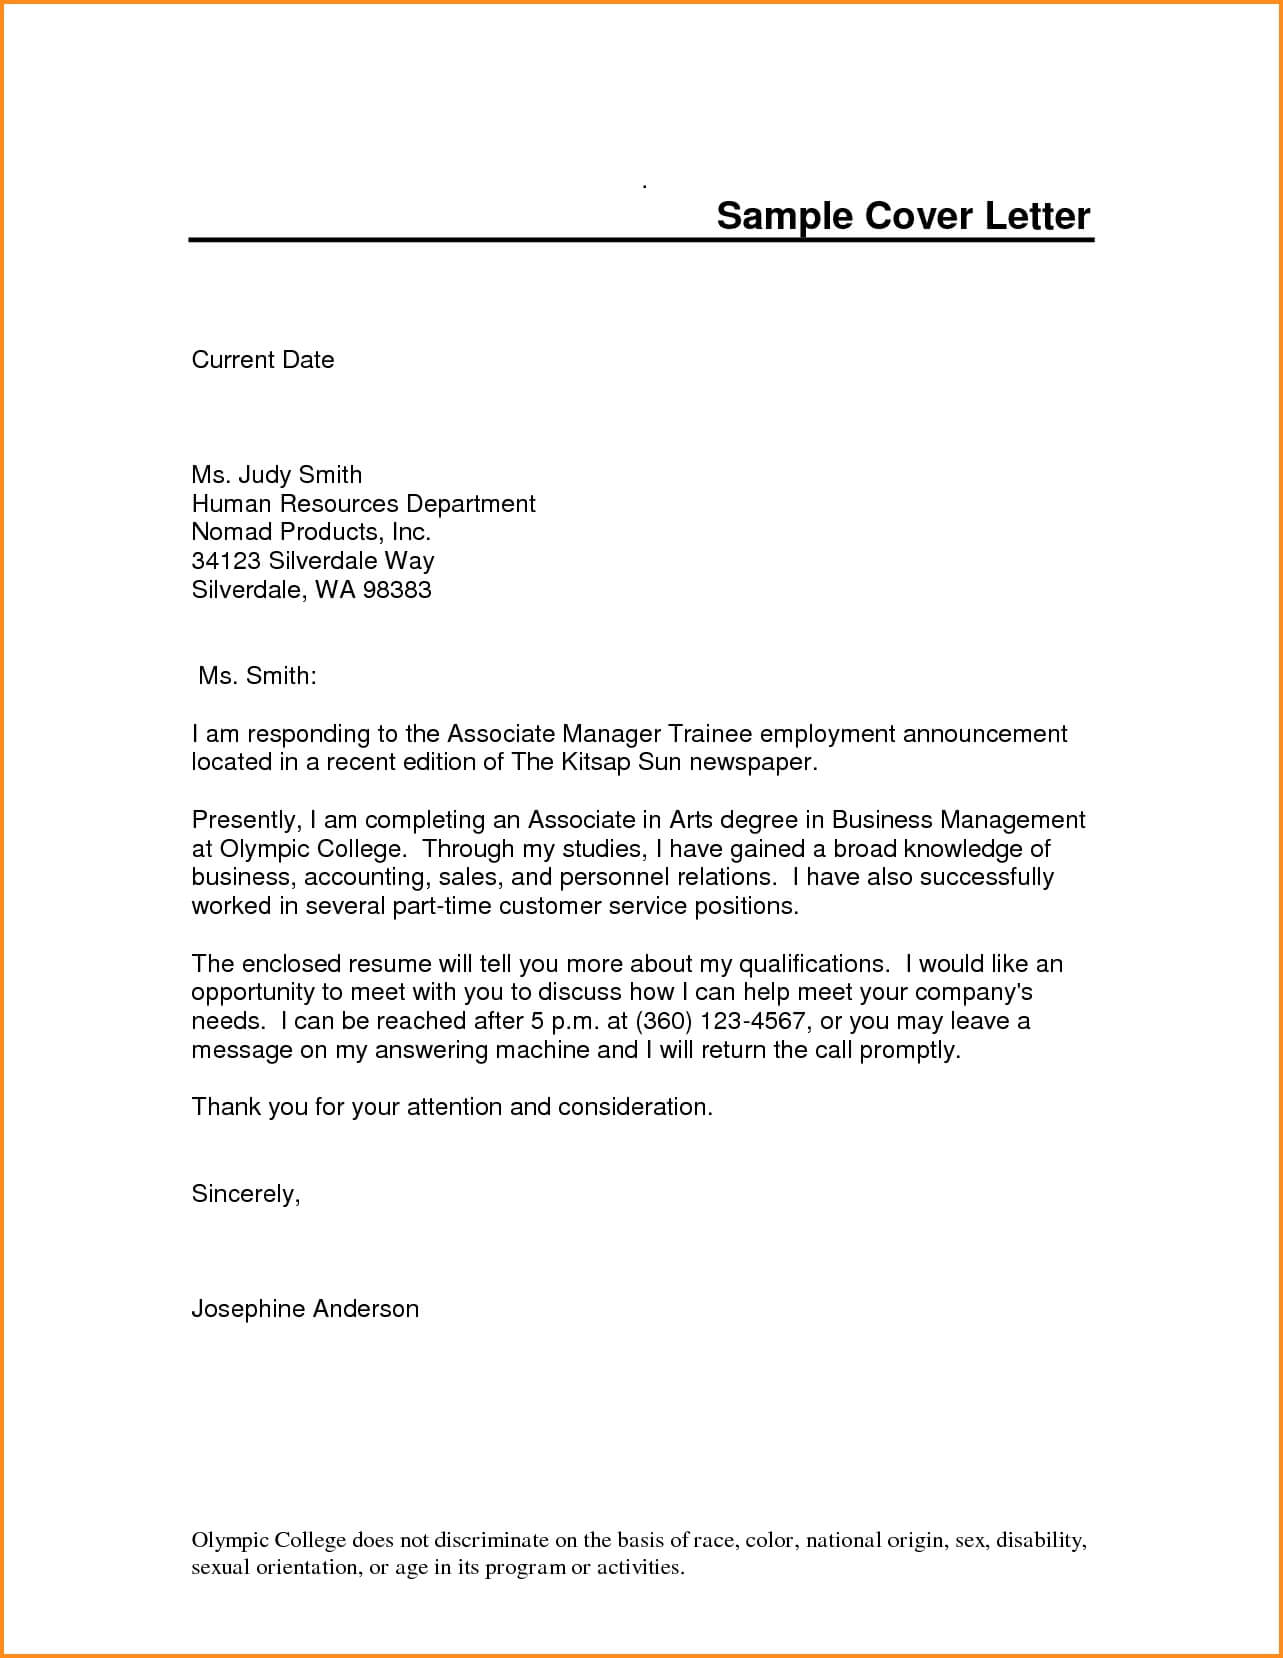 021 Template Ideas Letter Of Interest Microsoft Word Free Pertaining To Letter Of Interest Template Microsoft Word